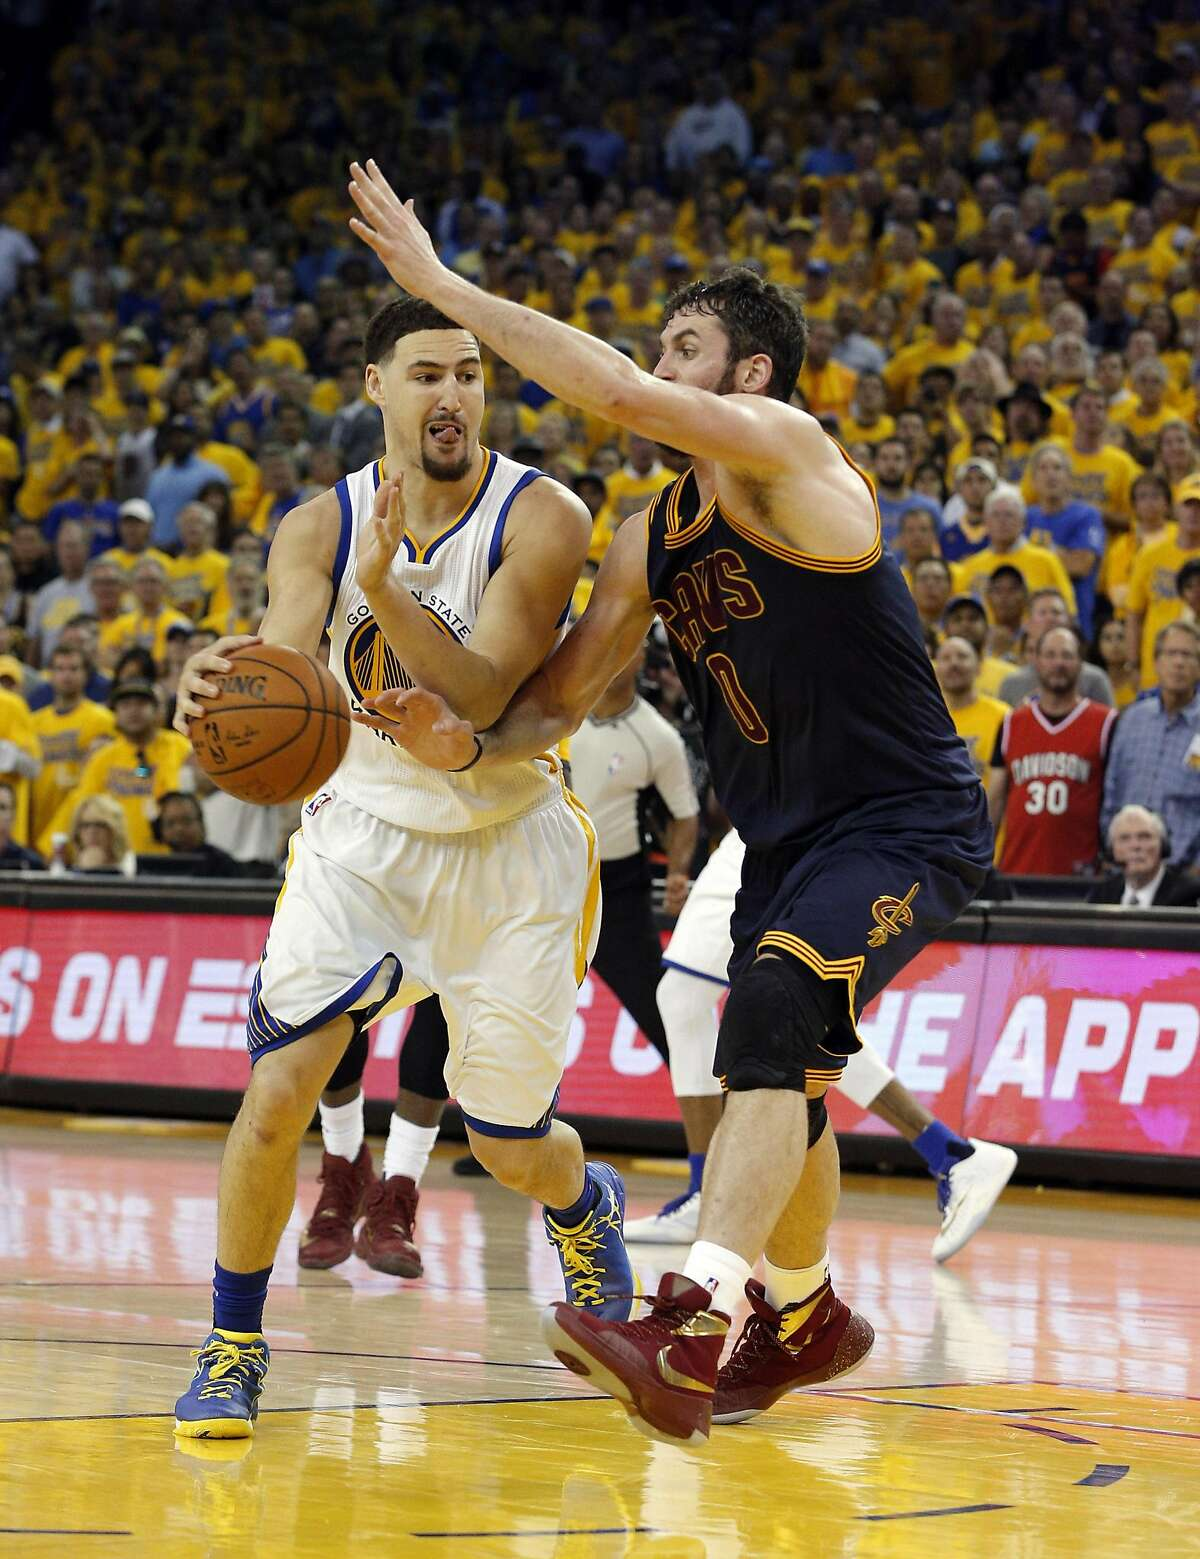 Klay Thompson (11) drives around a defeding Kevin Love (0) in the second half as the Golden State Warriors played the Cleveland Cavaliers in Game 1 of the NBA Finals at Oracle Arena in Oakland on June 2, 2016. The Warriors defeated the Cavaliers 104-89.